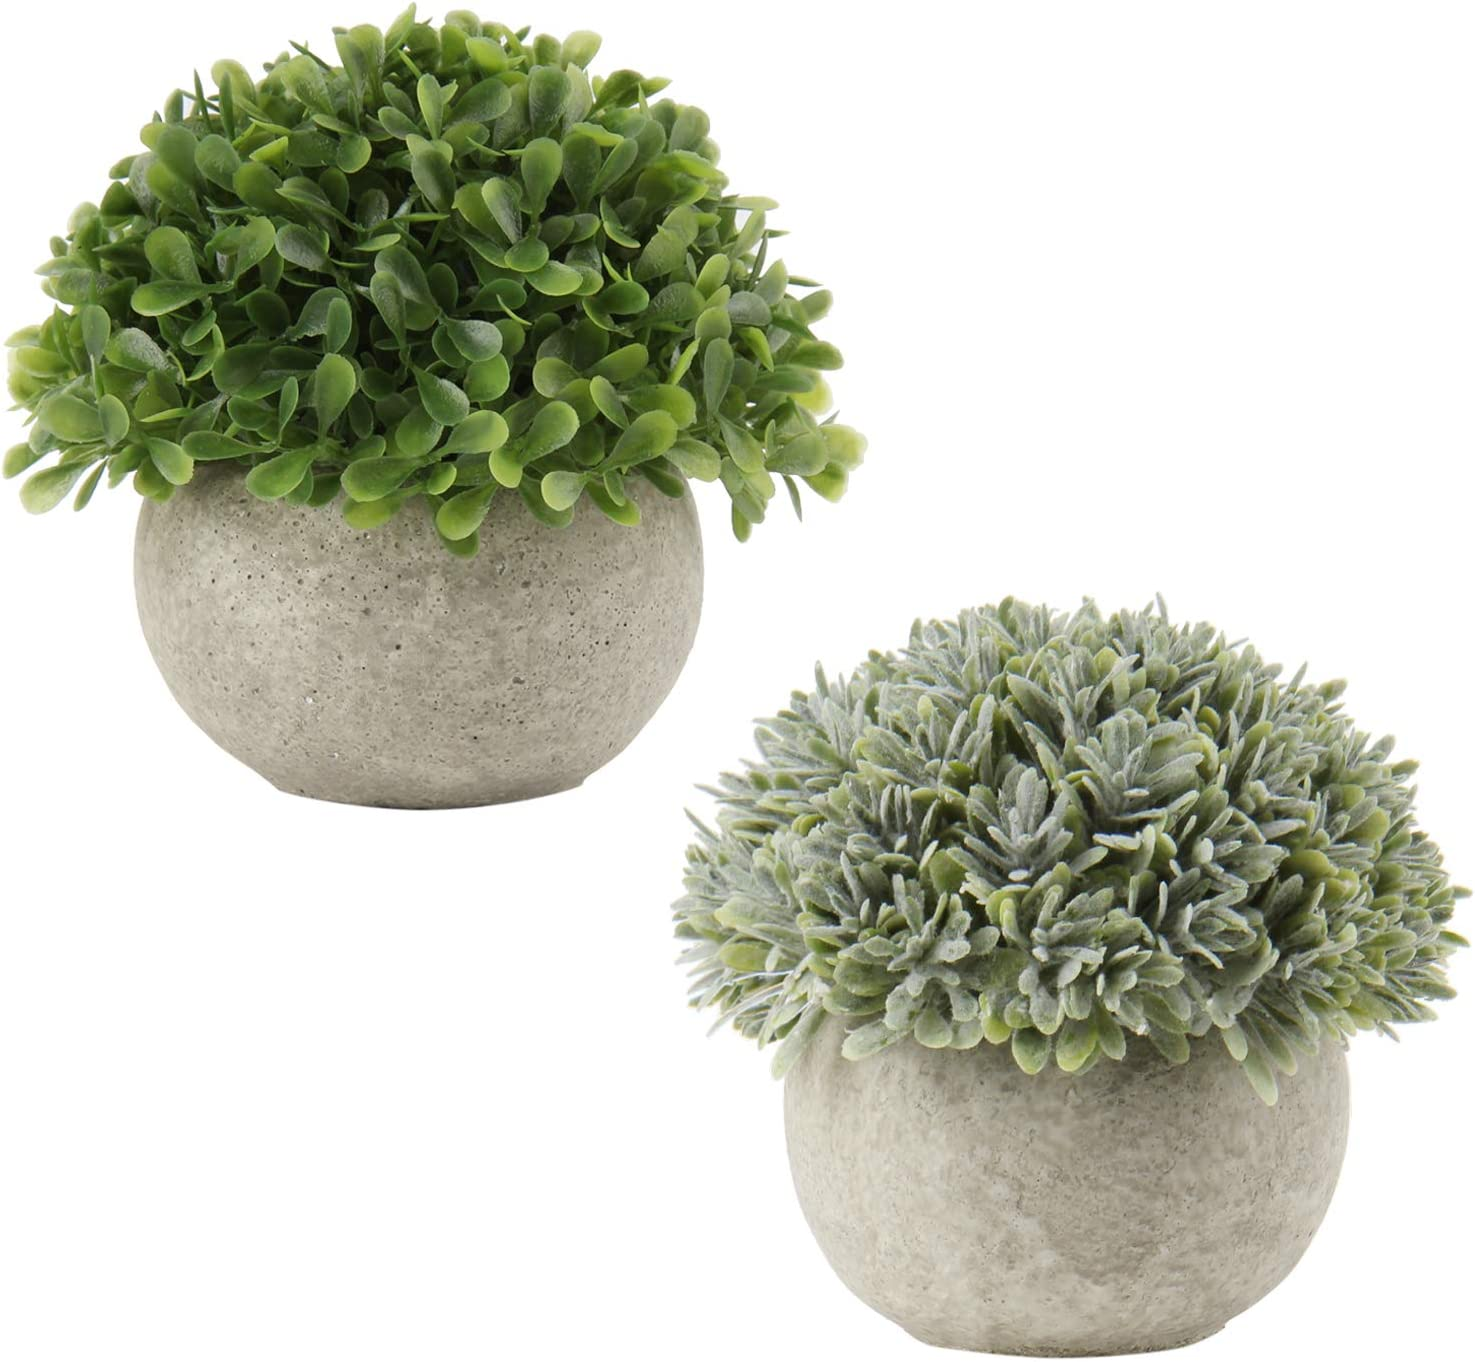 Fake Plants Artificial Mini Plants Plastic Green Grass Small Faux Greenery Potted Plant with White Cement Pots for Home Office Desk Bathroom House Decor